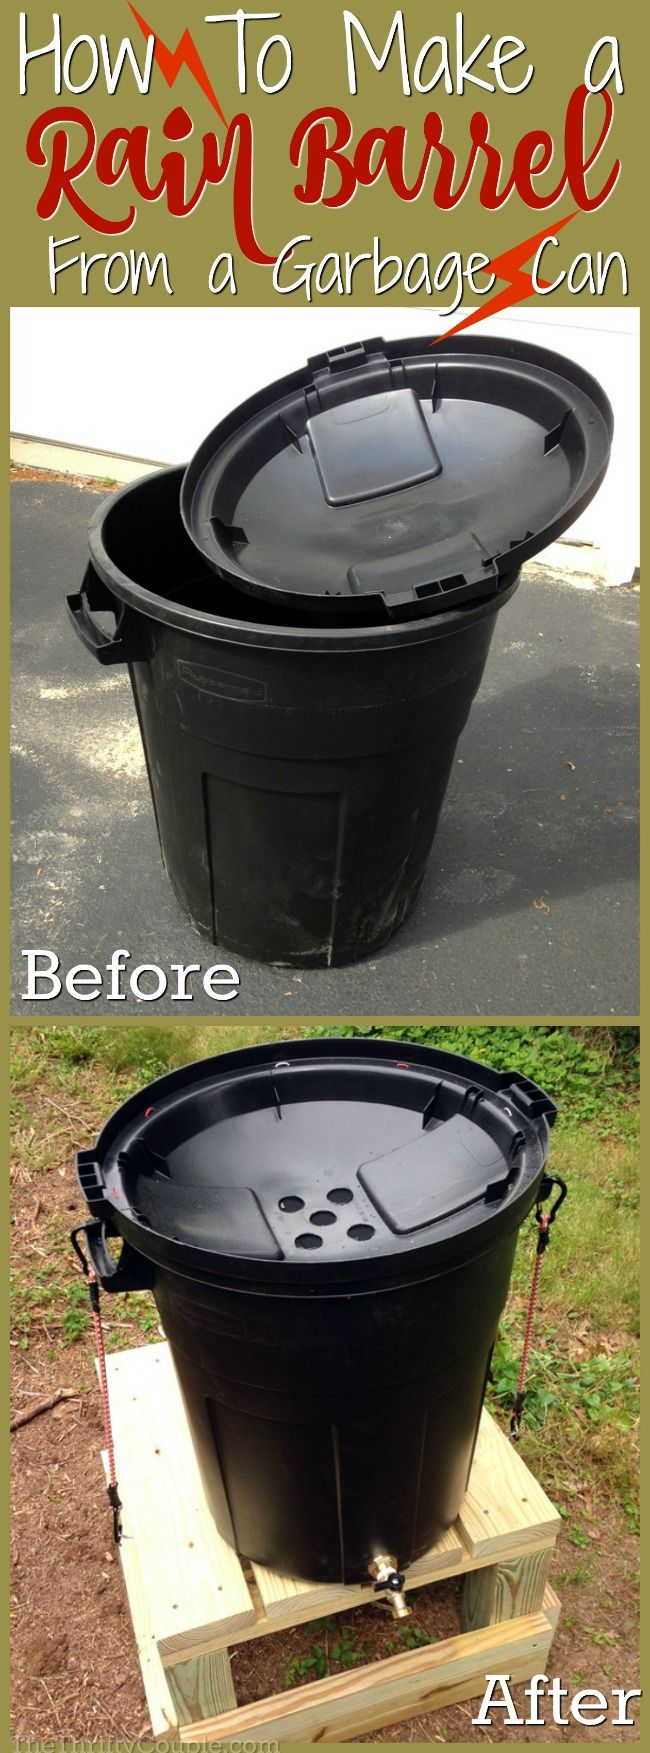 How to Make a DIY Rain Barrel from a Garbage Can - The Thrifty Couple